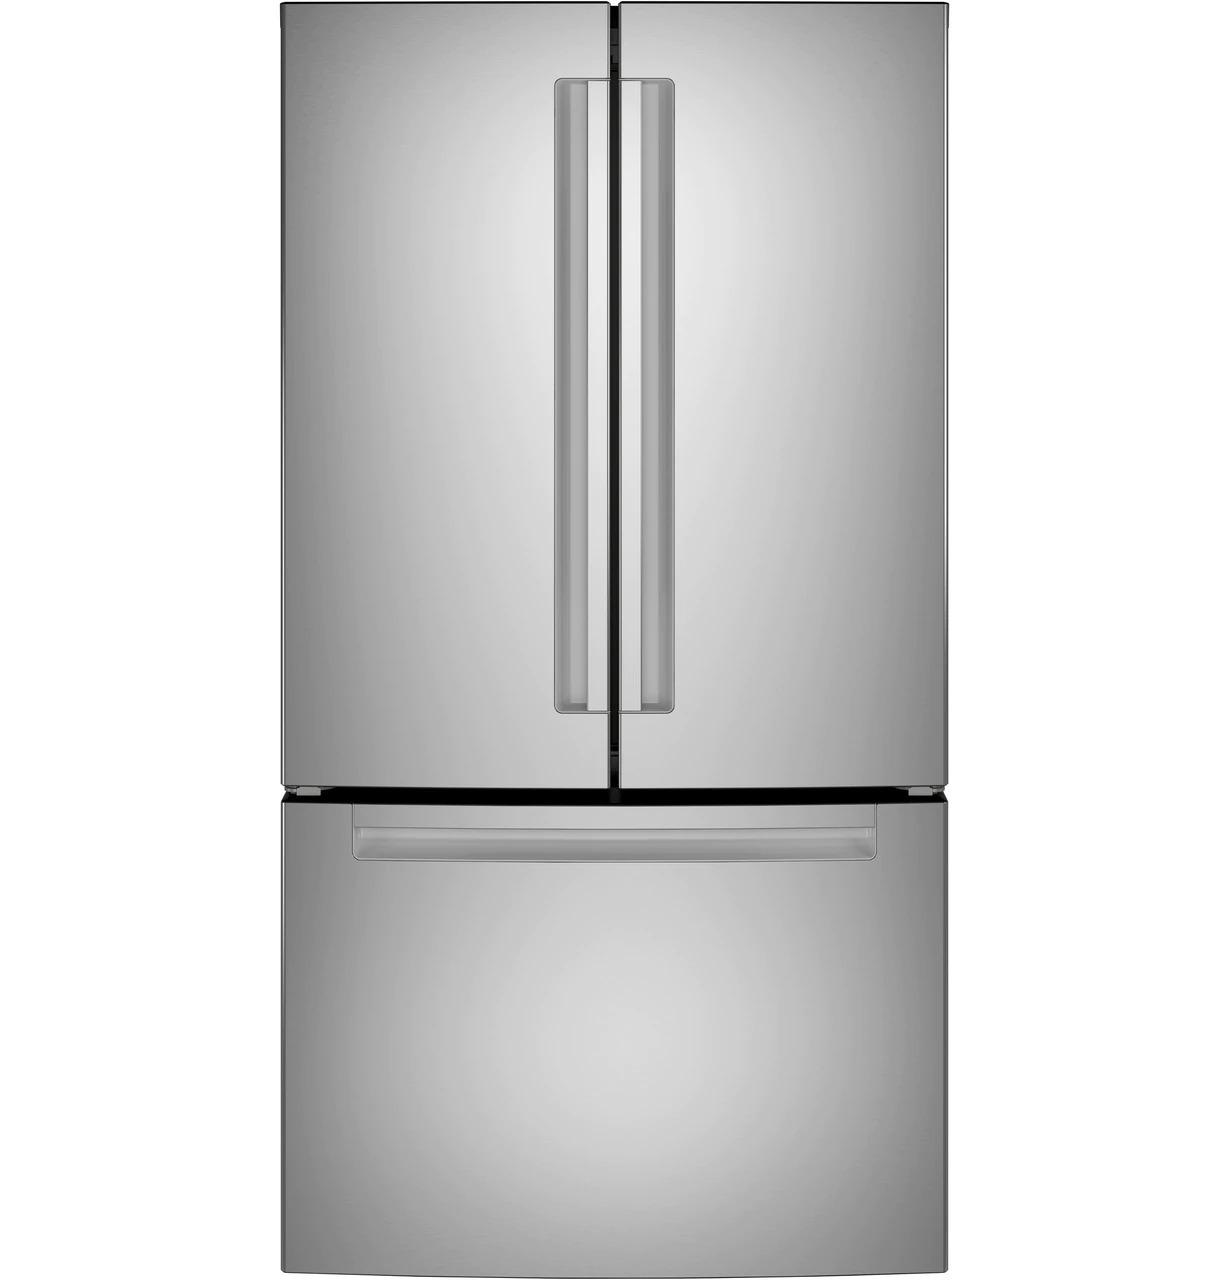 HaierEnergy Star(r) 27.0 Cu. Ft. Fingerprint Resistant French-Door Refrigerator